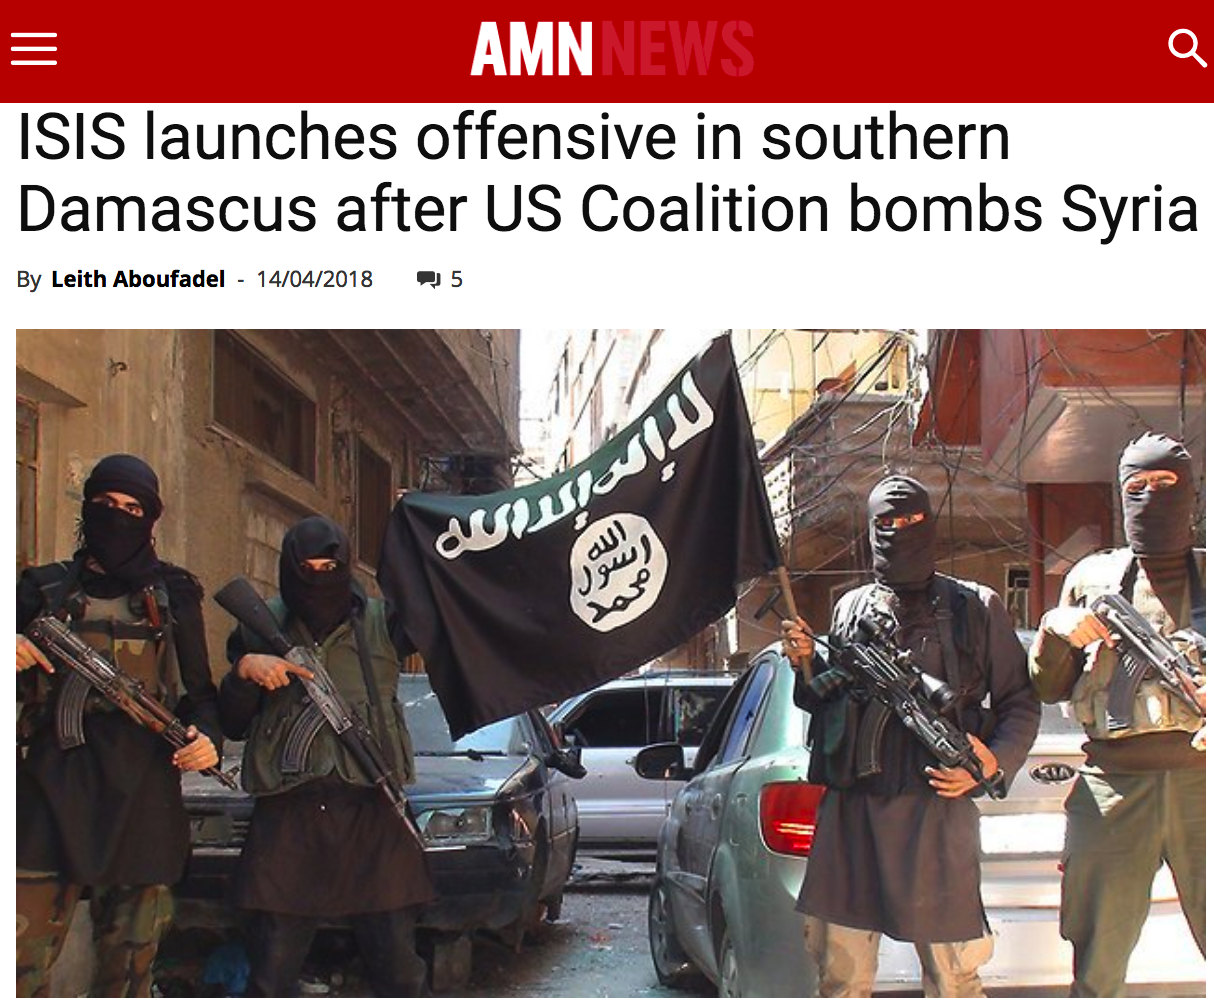 Johnson praised Assad for success v ISIS. ISIS used missile attacks to cover Damascus assault